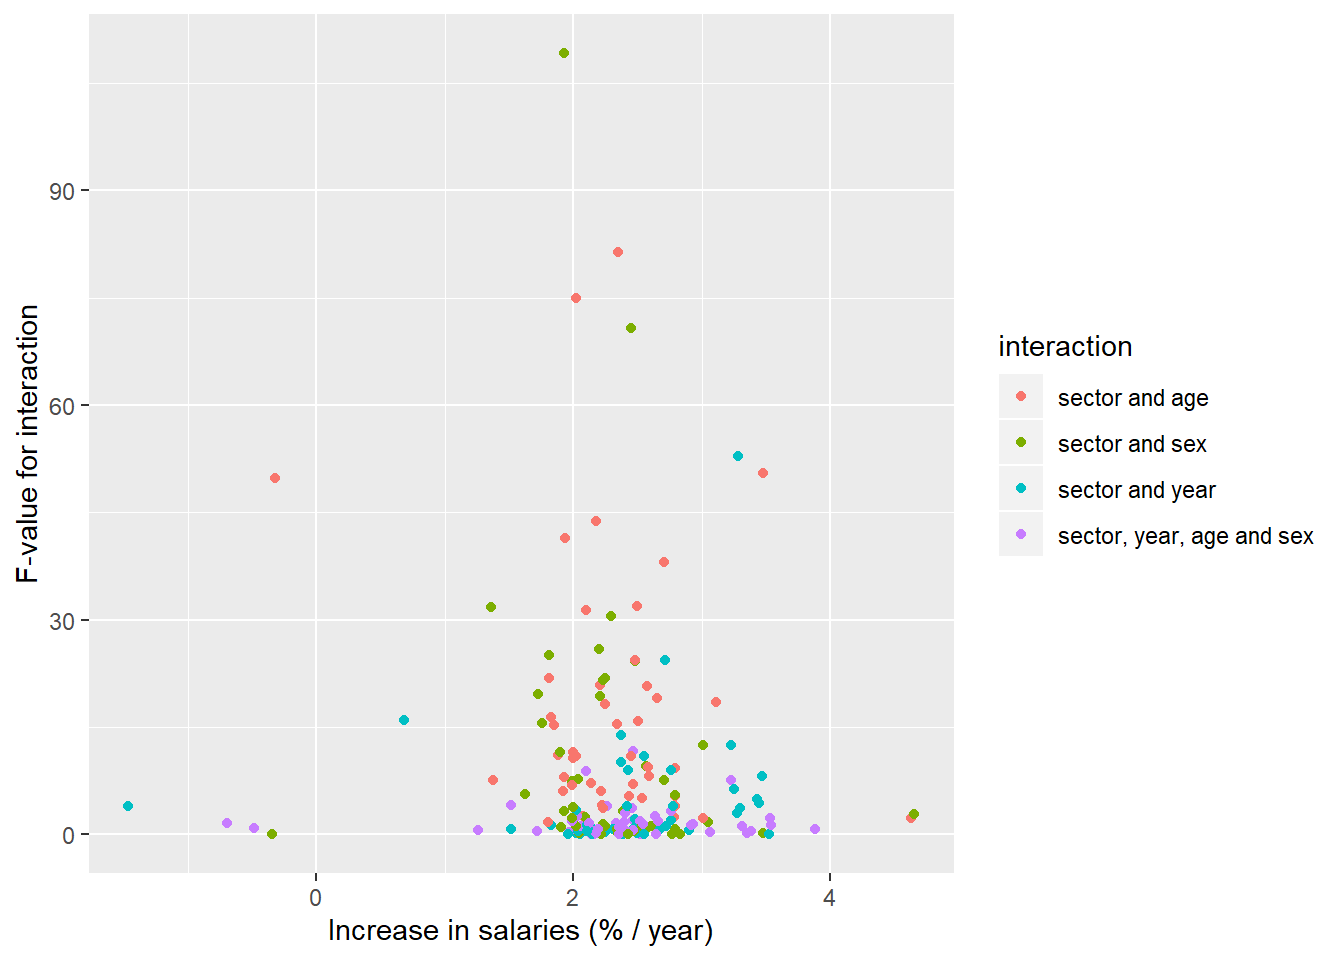 The significance of the interaction between sector, age, year and sex on the salary in Sweden, a comparison between different occupational groups, Year 2014 - 2018